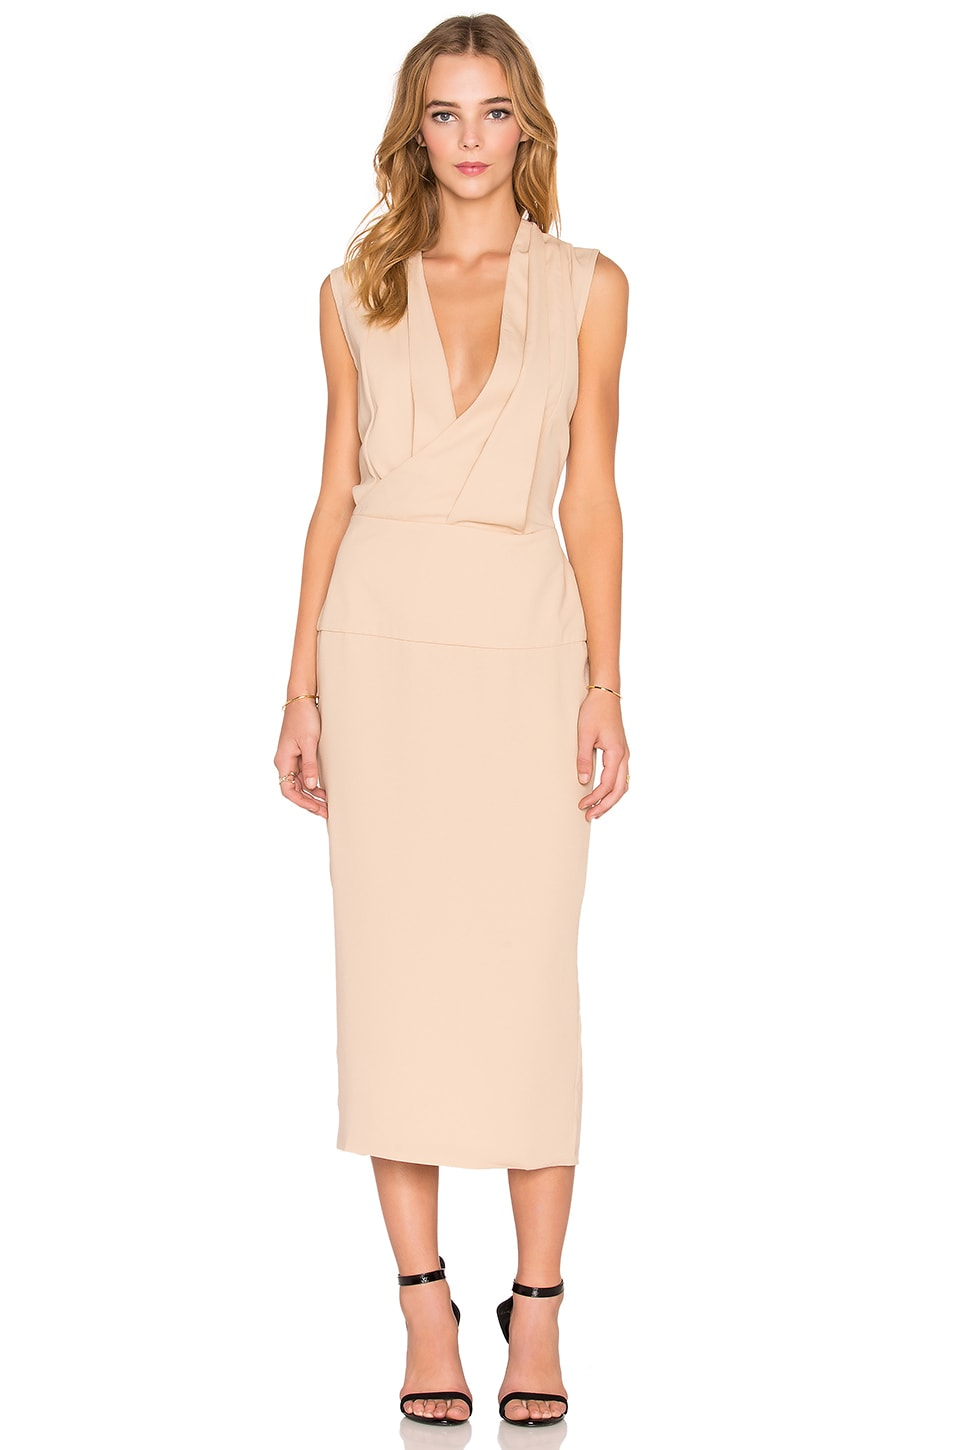 buy Lillianne Dress by Maurie & Eve dresses online shopping